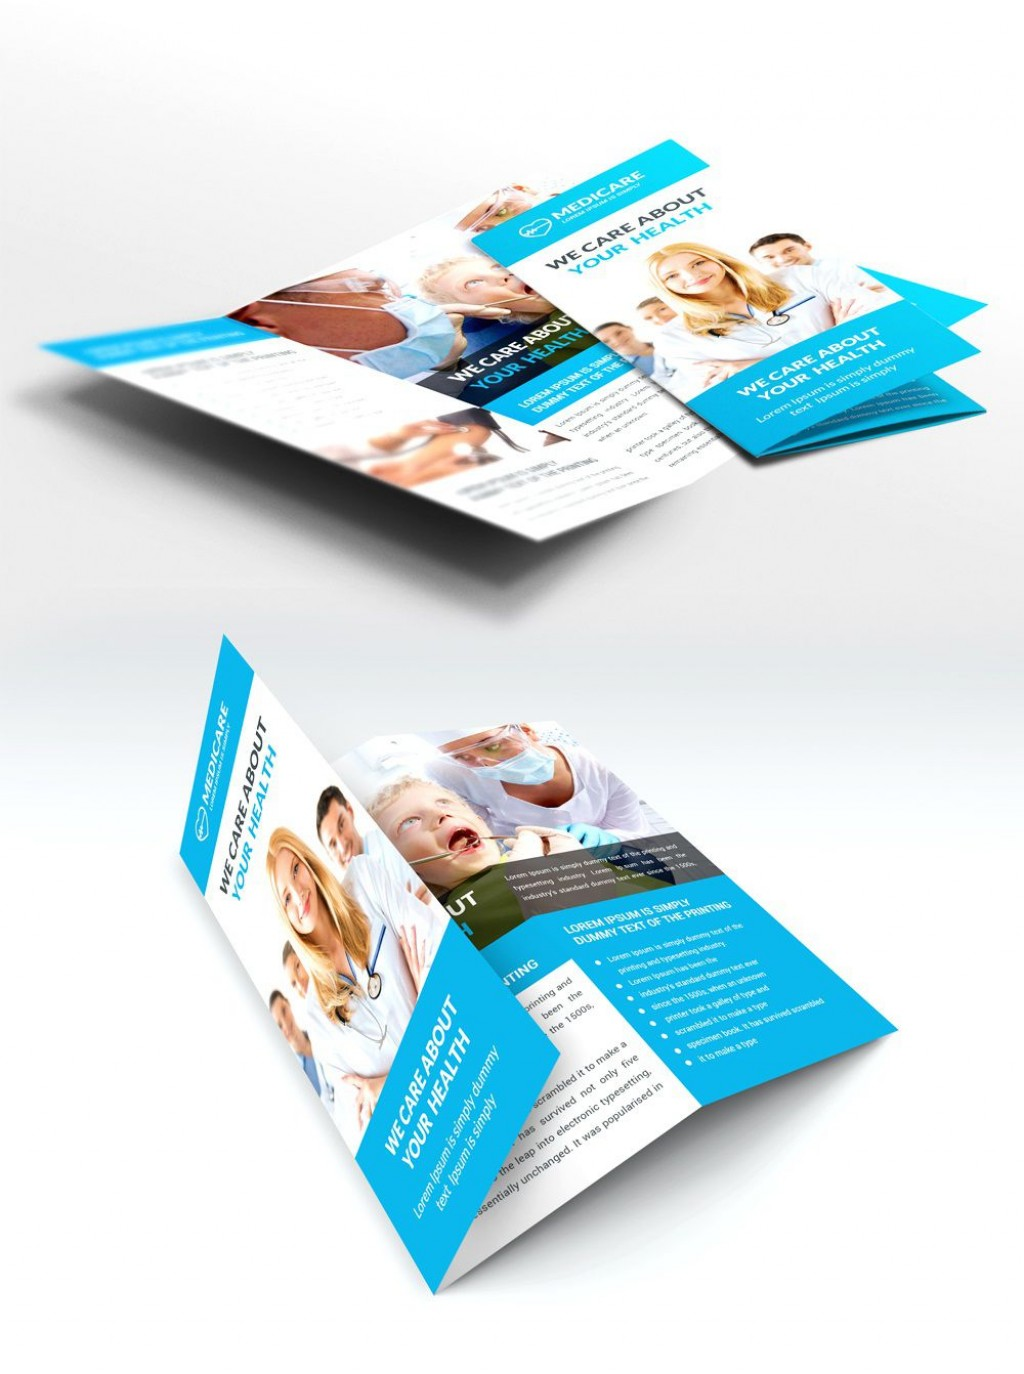 009 Fearsome Adobe Photoshop Brochure Template Free Download Concept Large